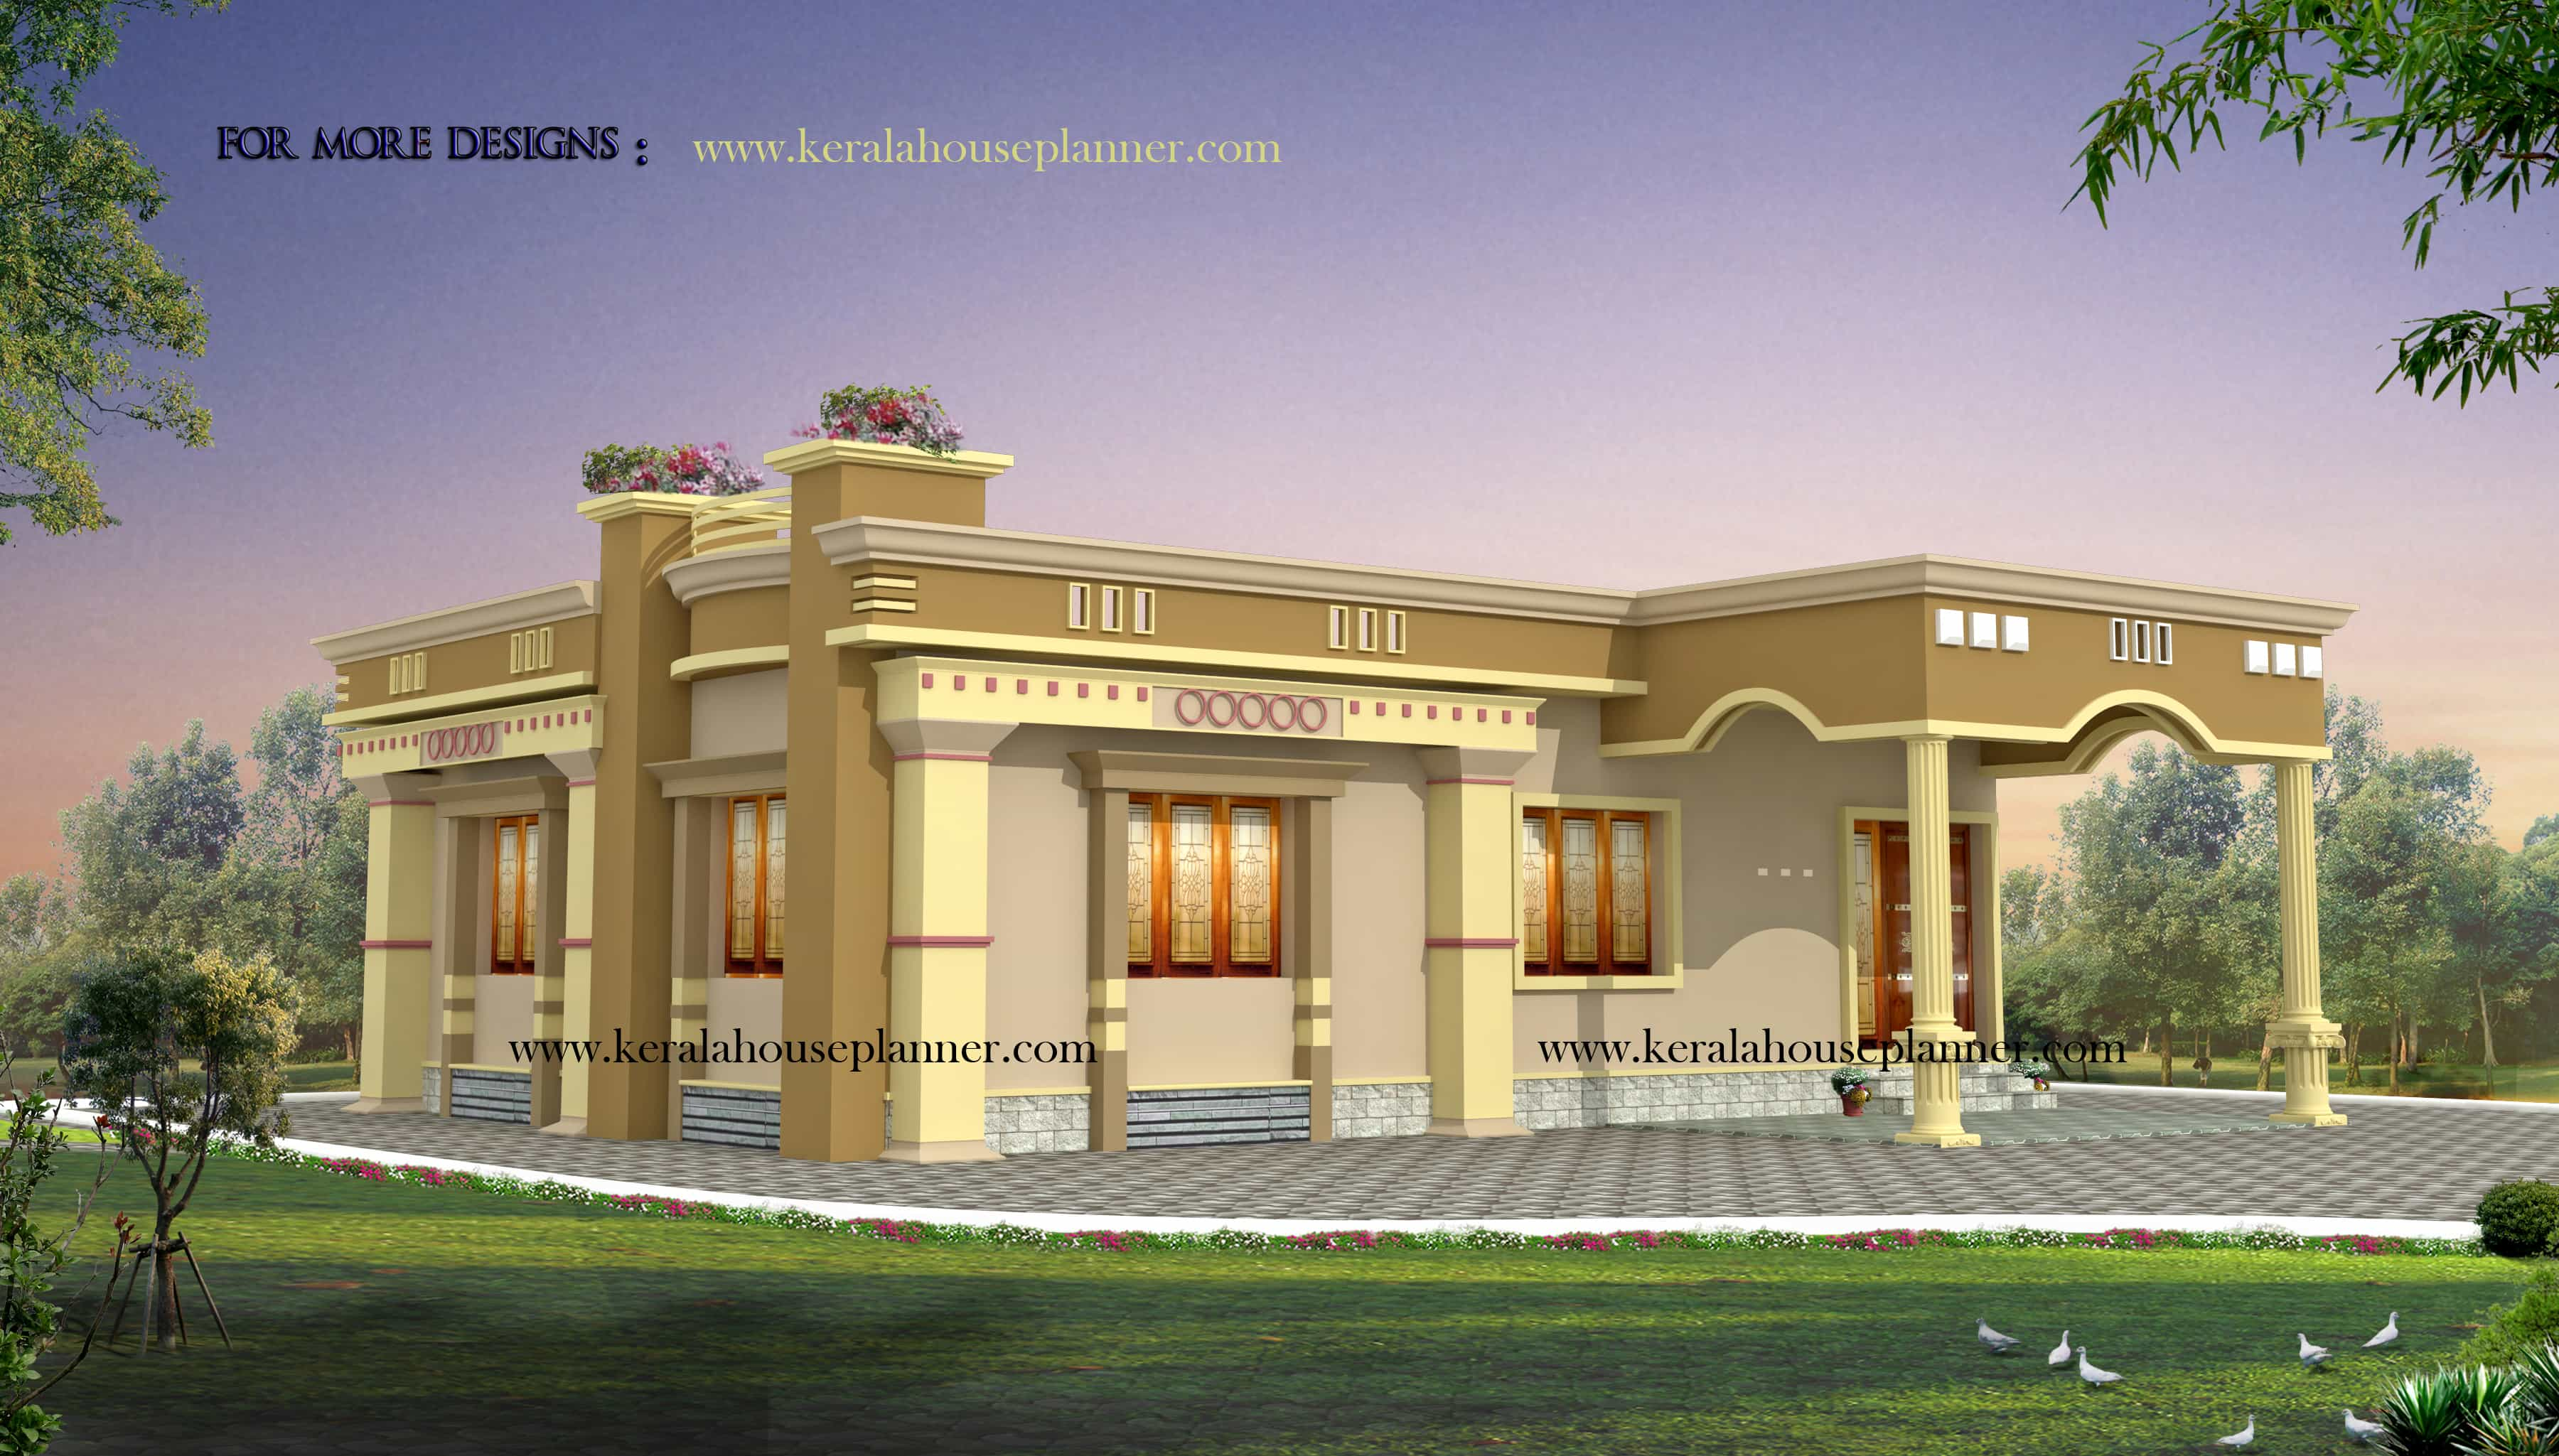 Marvelous Kerala Home Design 1200 Sq Ft #2: House Design Details. Total Plan Area : 1200 Sq.ft